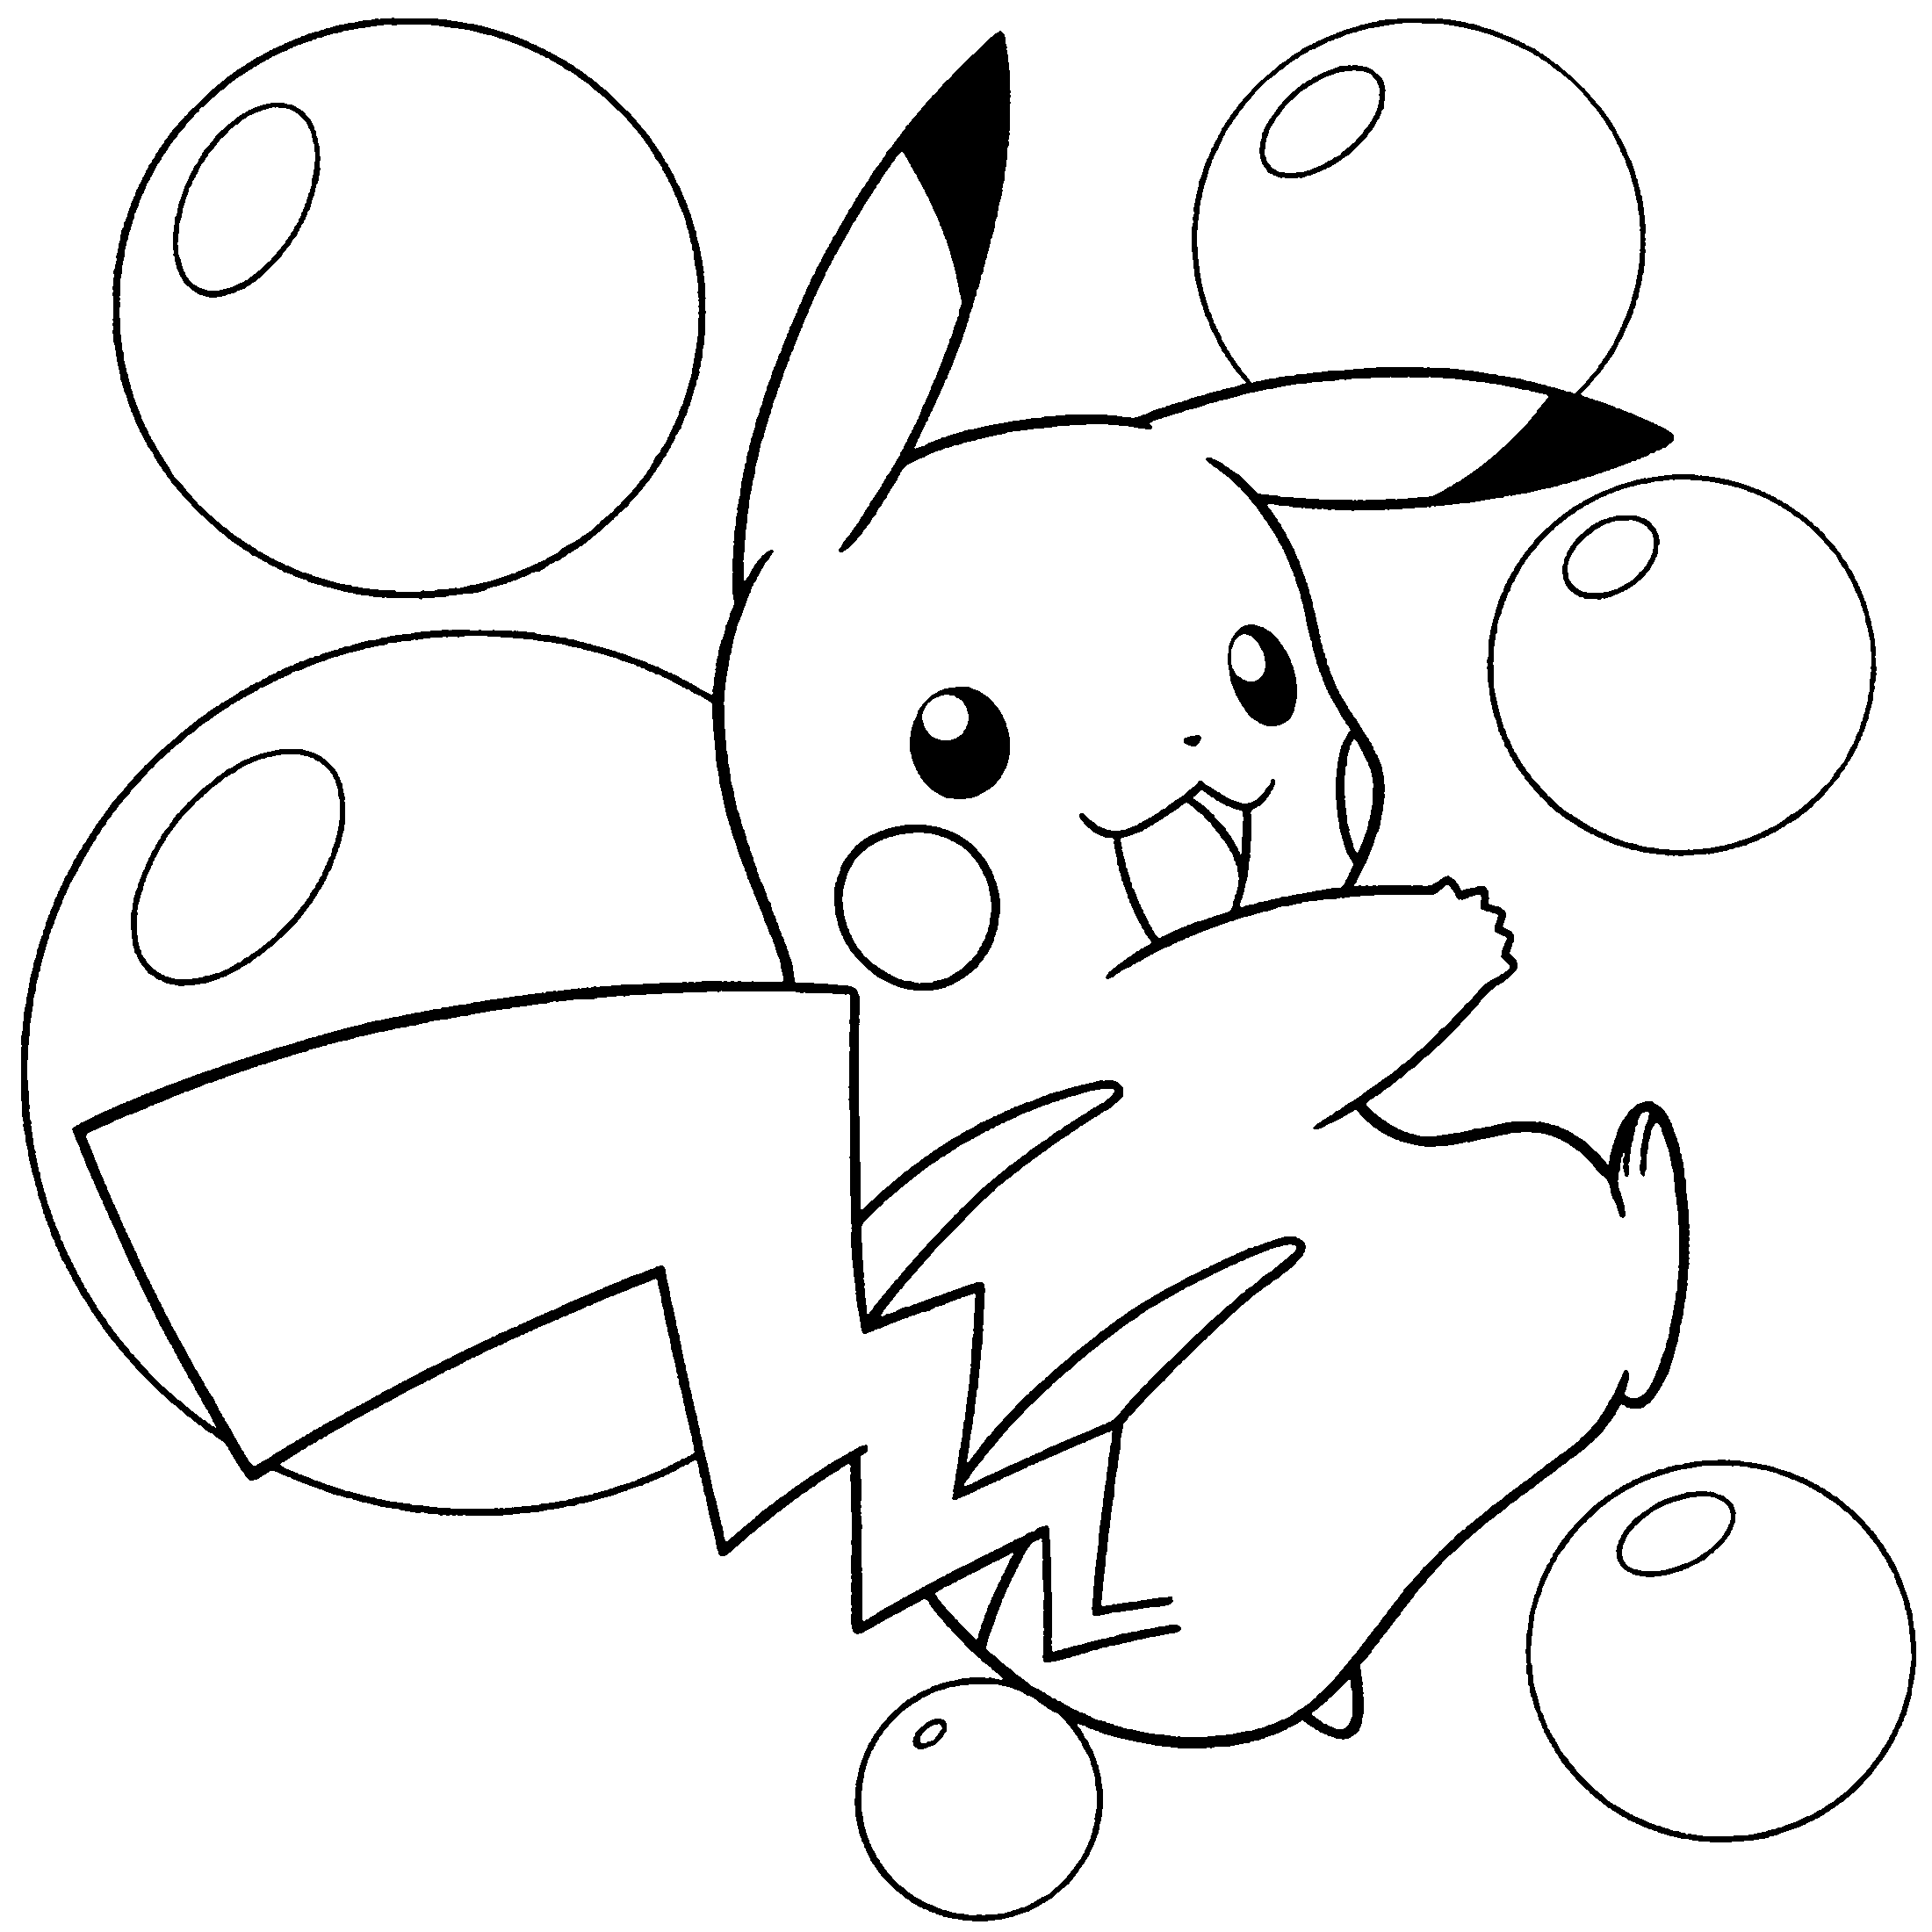 download pokemon coloring pages 1 - Coloring Page Pokemon